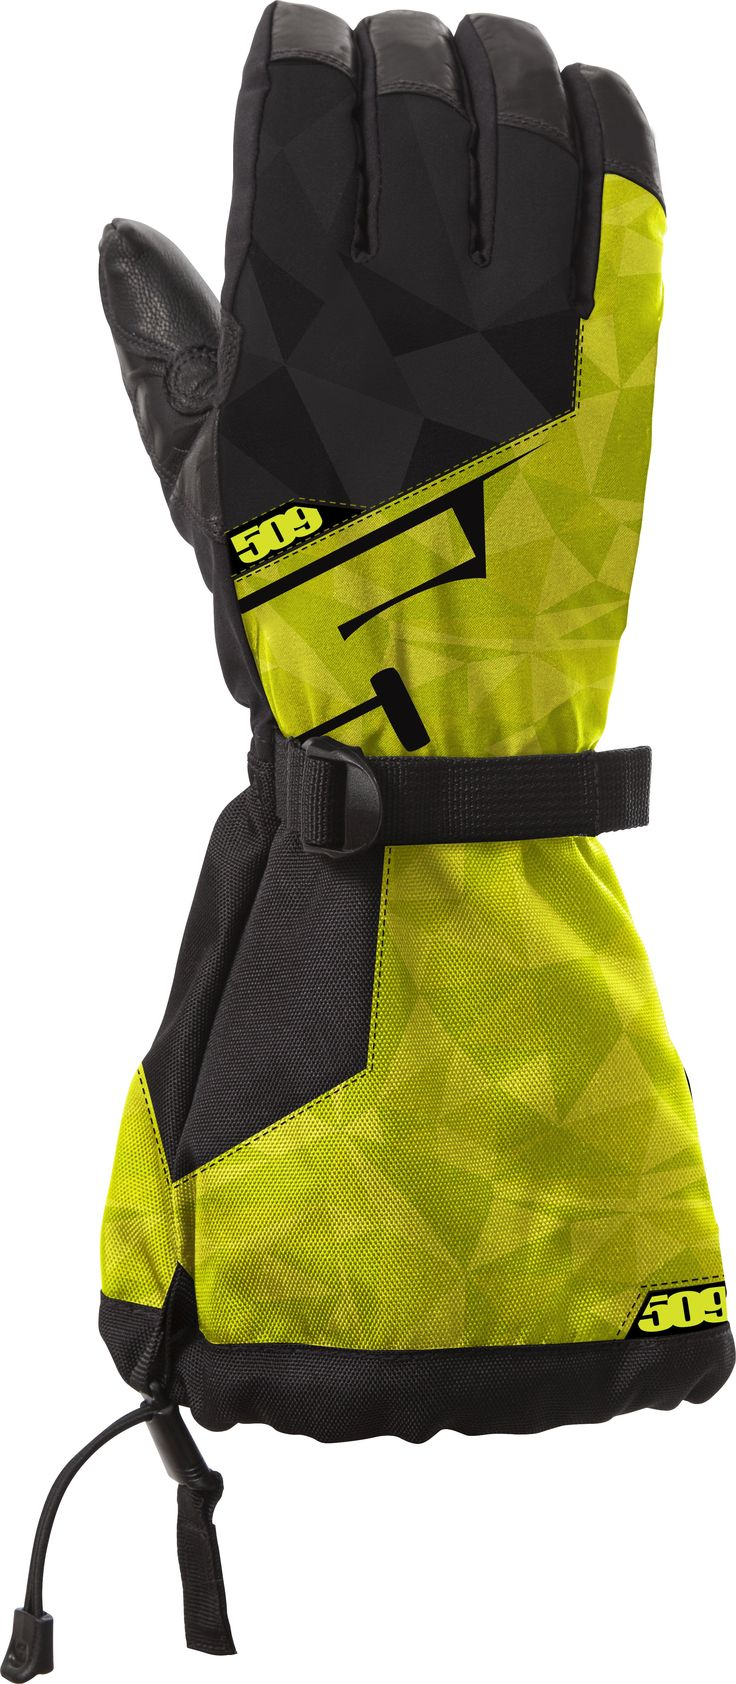 509 Backcountry Snowmobile Gloves Lime